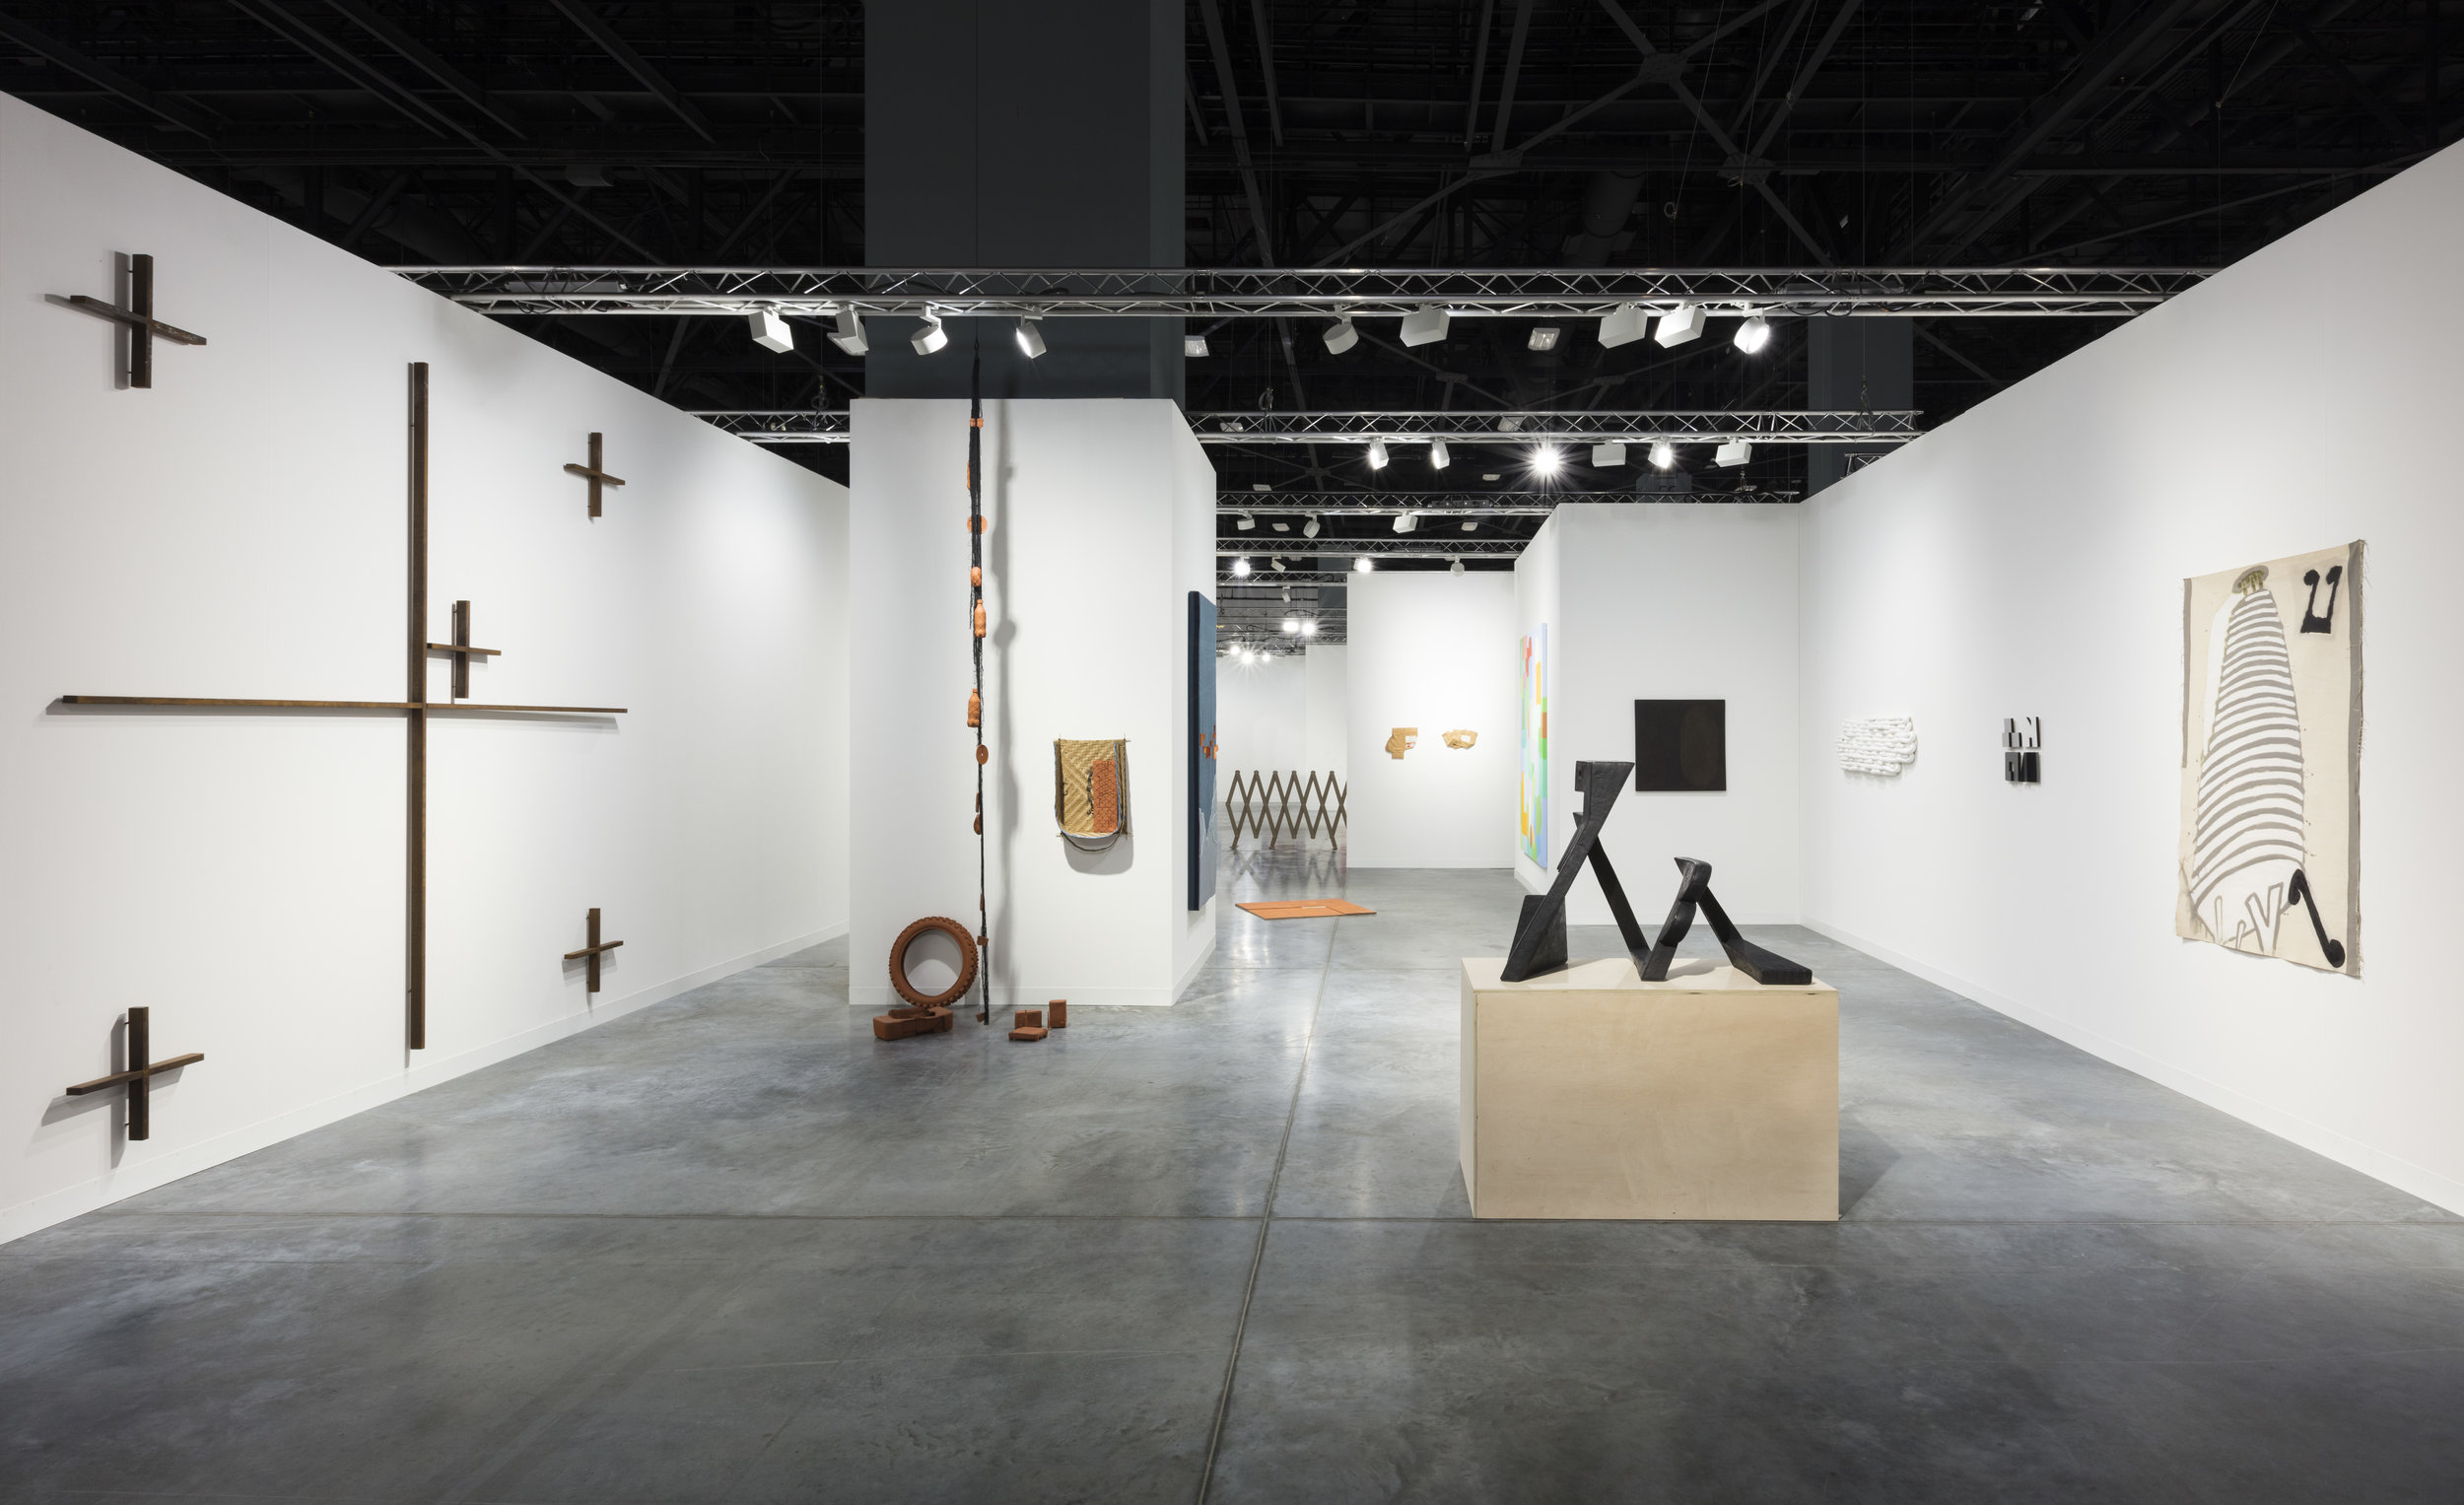 View from East entrance of Galeria Lusia Strina booth at Art Basel Miami Beach, photo courtesy to Galeria Lusia Strina.